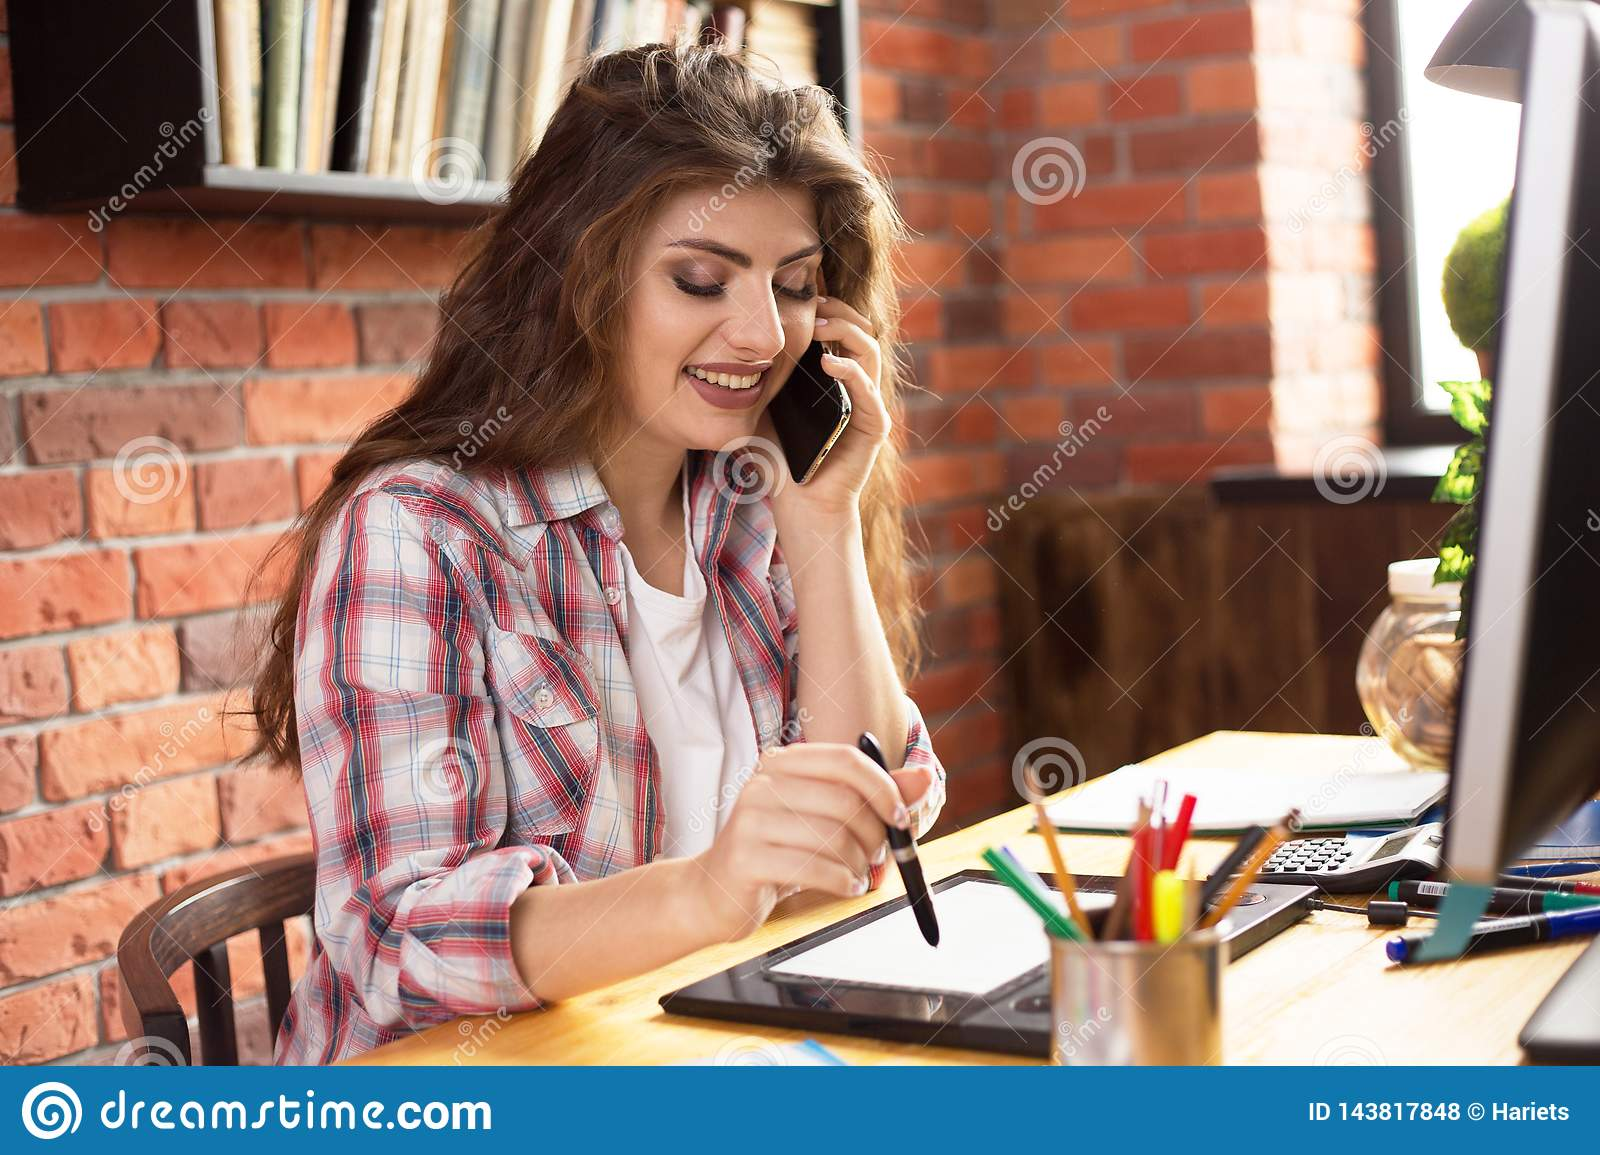 Young female with long hair working with graphic tablet at home or in a loft style office. She talking on a phone and